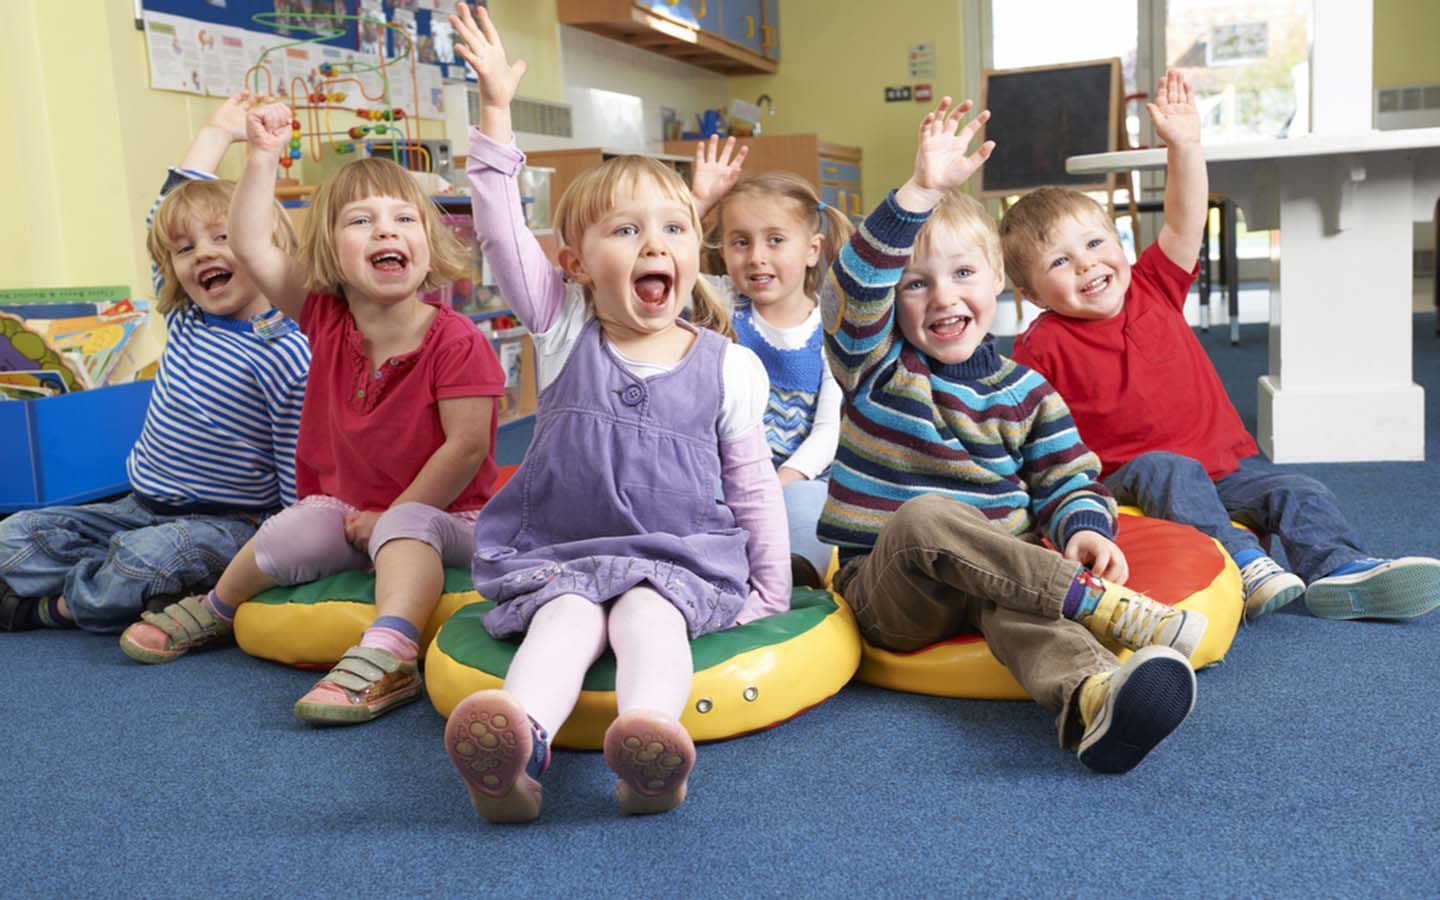 Kids participating in a group discussion at a preschool